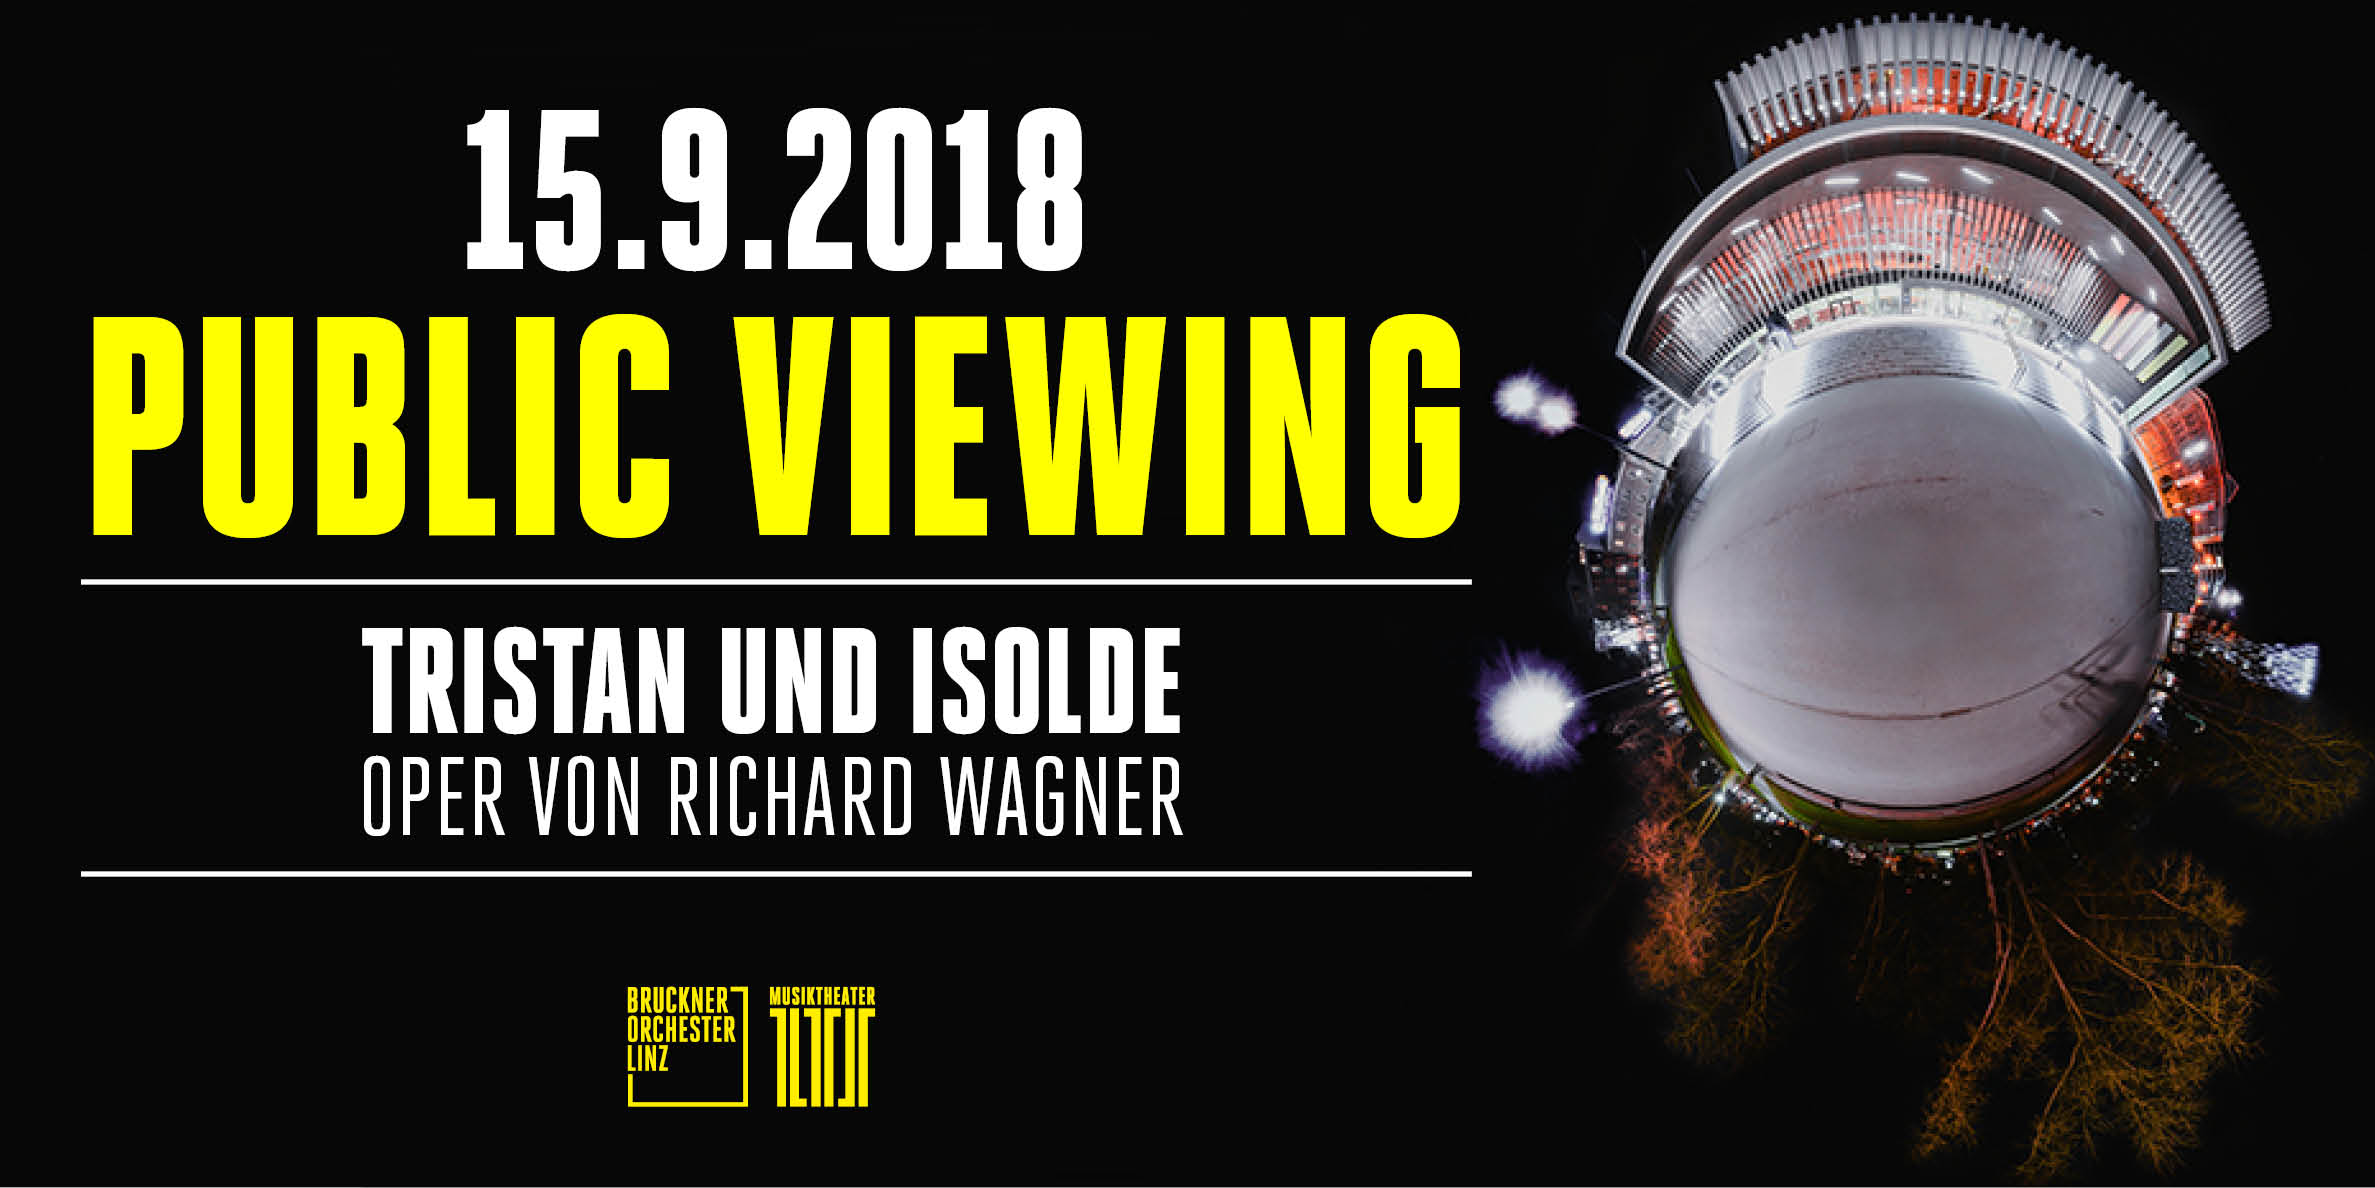 PUBLIC VIEWING: Tristan und Isolde